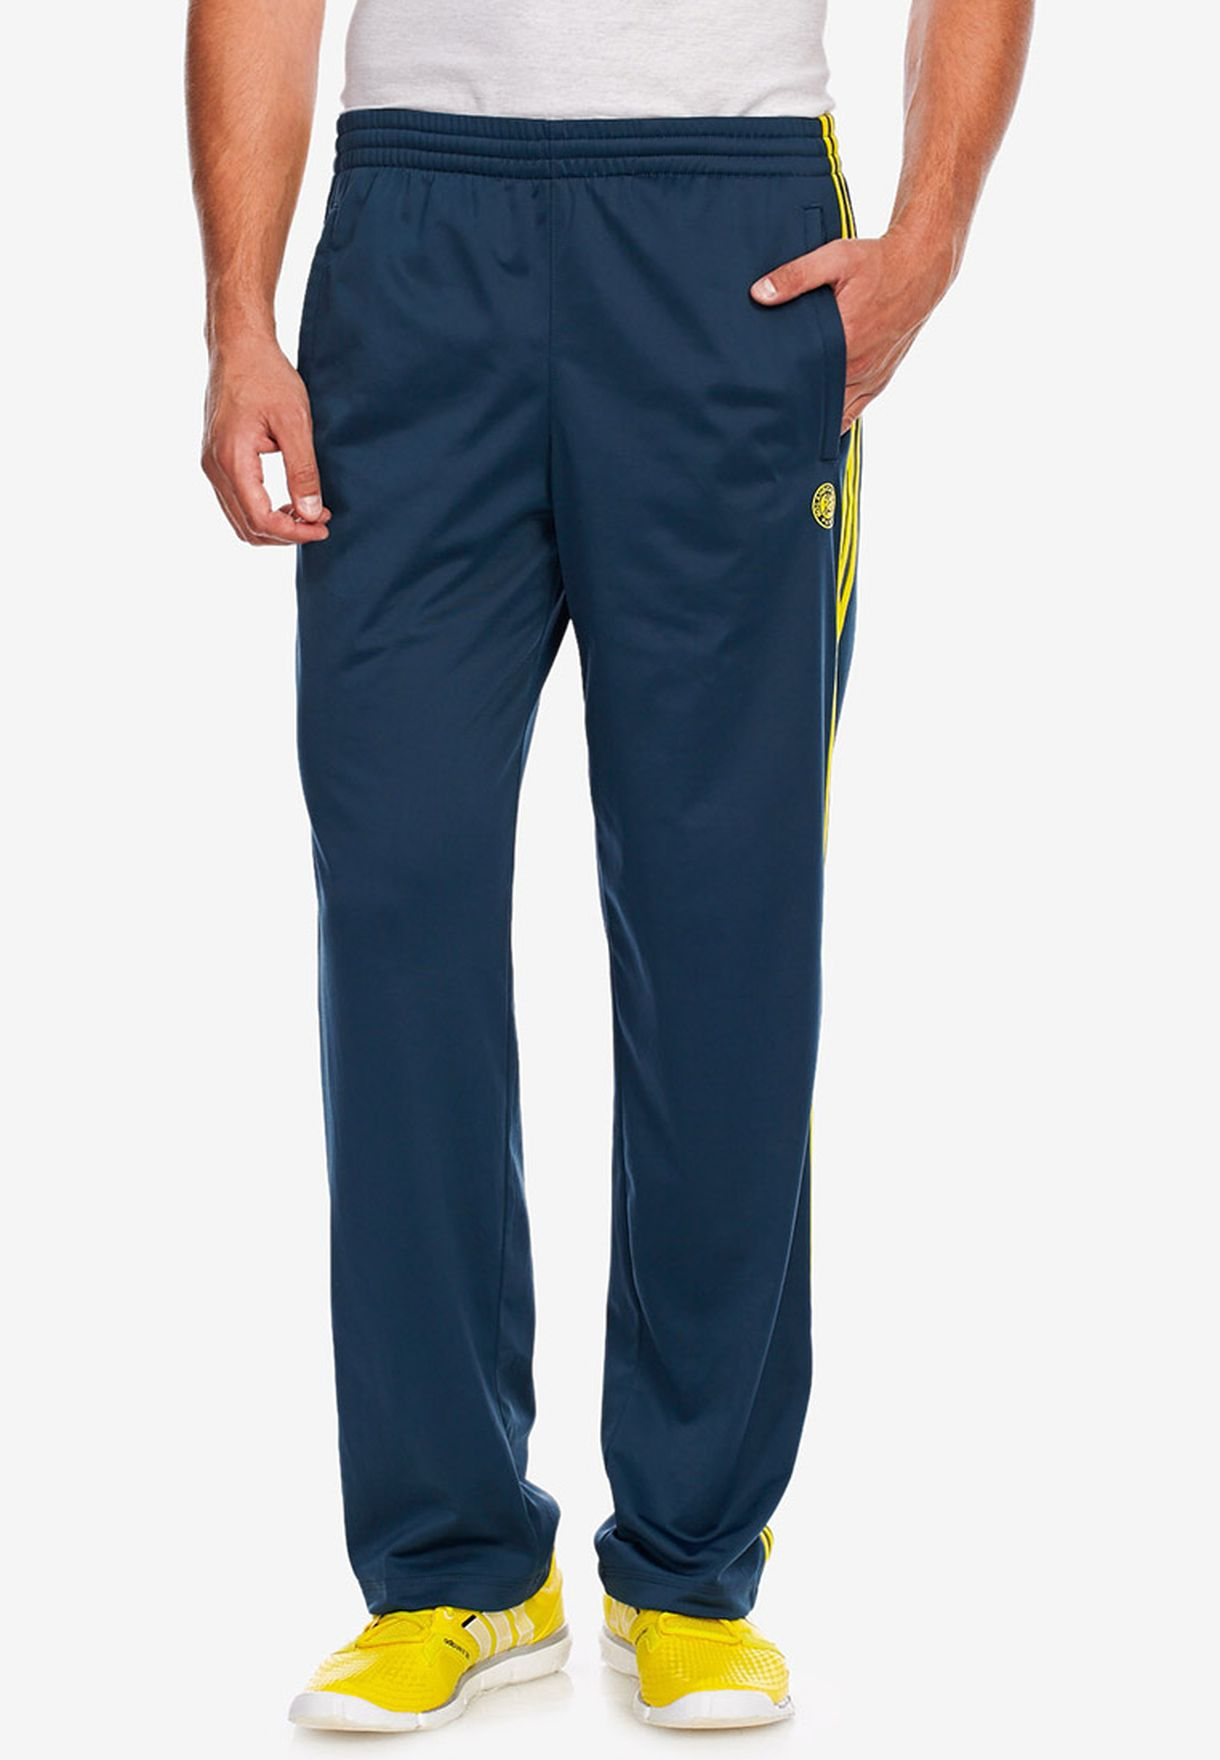 182ba205 Shop adidas navy Rg Wu Pant Z36774 for Men in UAE - AD476AT82ZZP